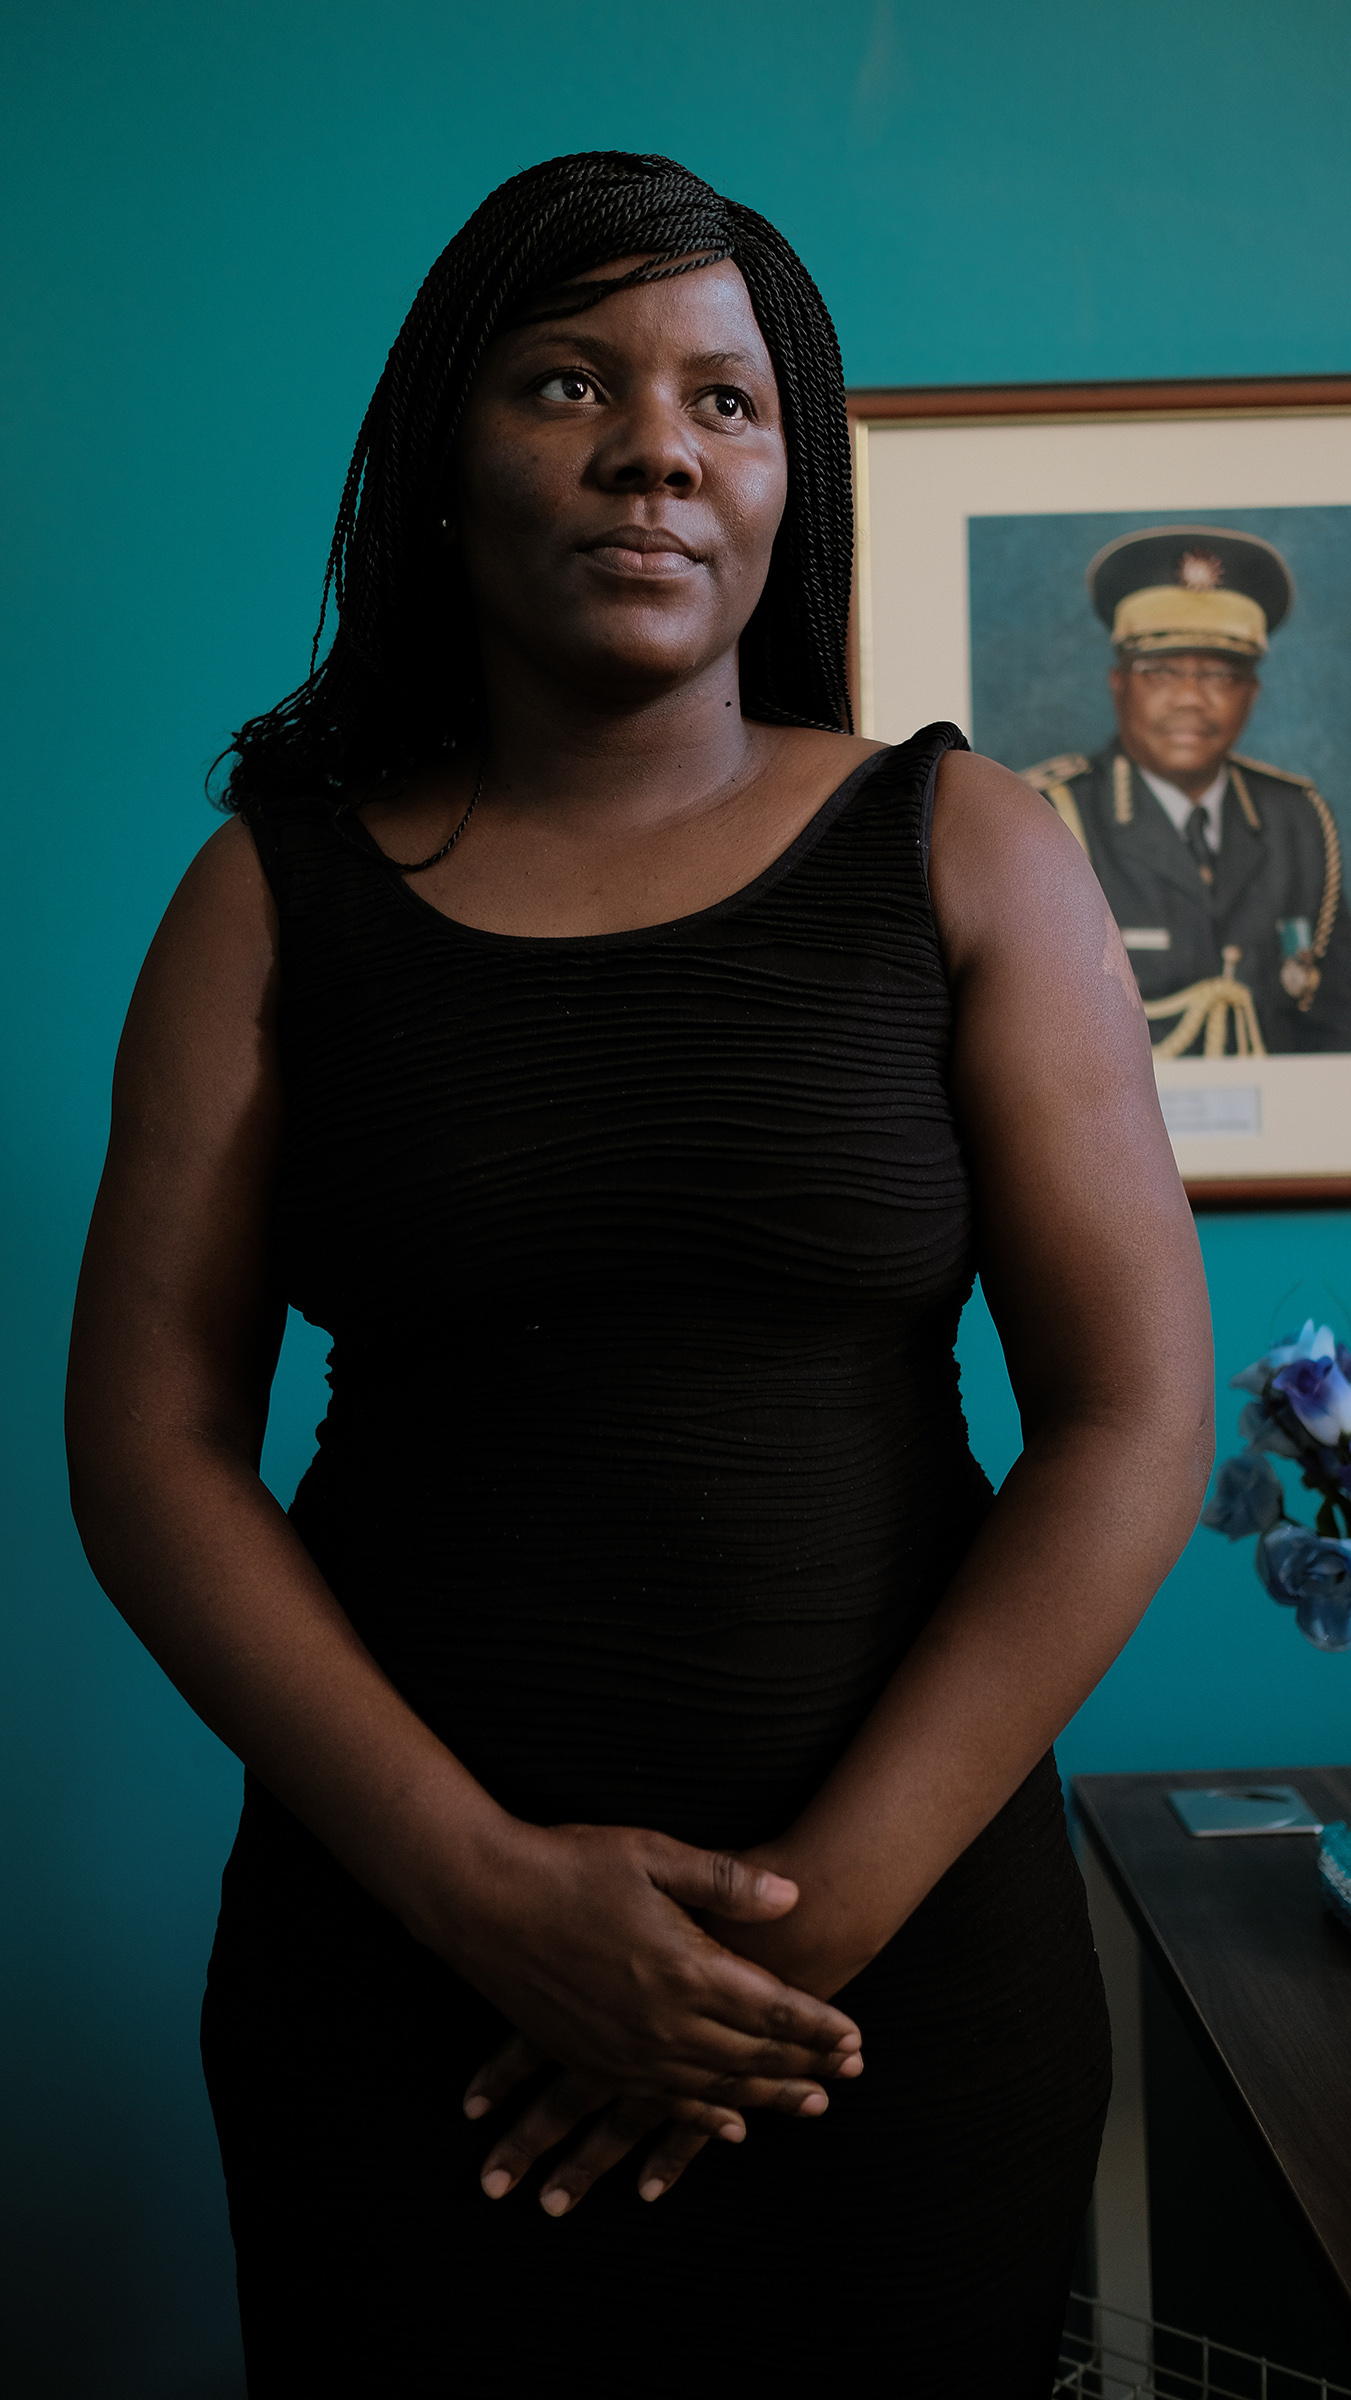 Sergeant Detective Rosaline from the Gender-based violence unit poses for a portrait in Windhoek, Namibia in the summer of 2019.